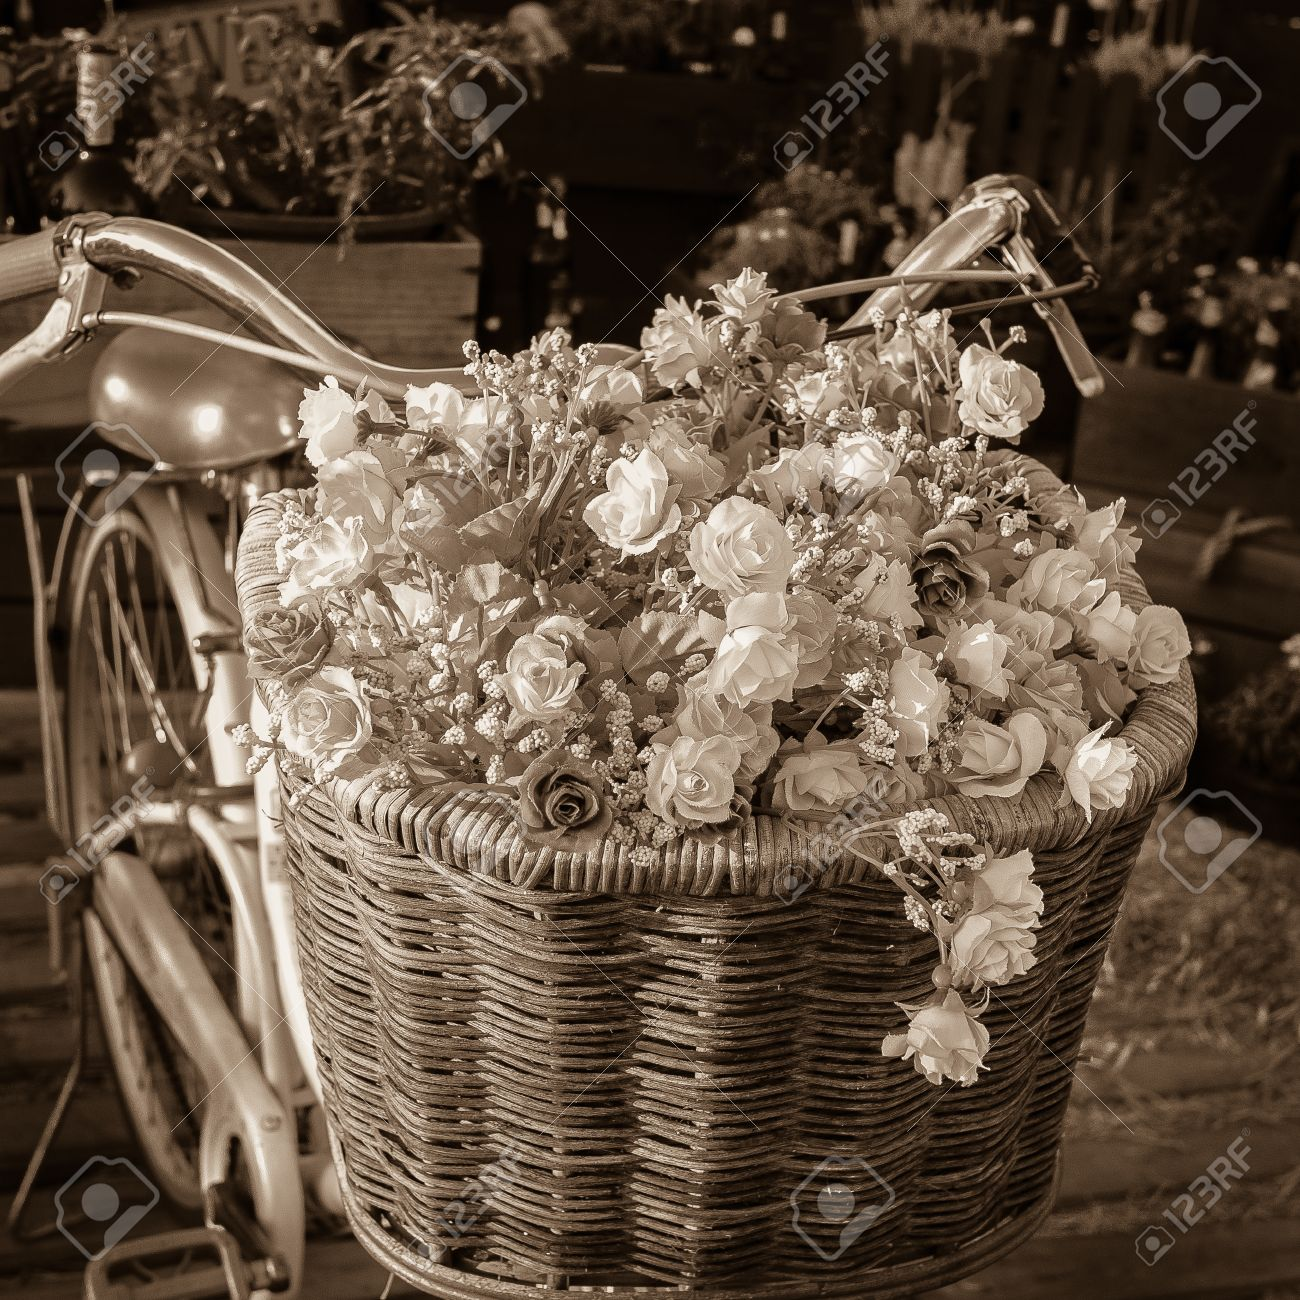 Vintage Bicycle Has Beautiful Flowers In A Basket On The Front Stock Photo Picture And Royalty Free Image Image 23937477